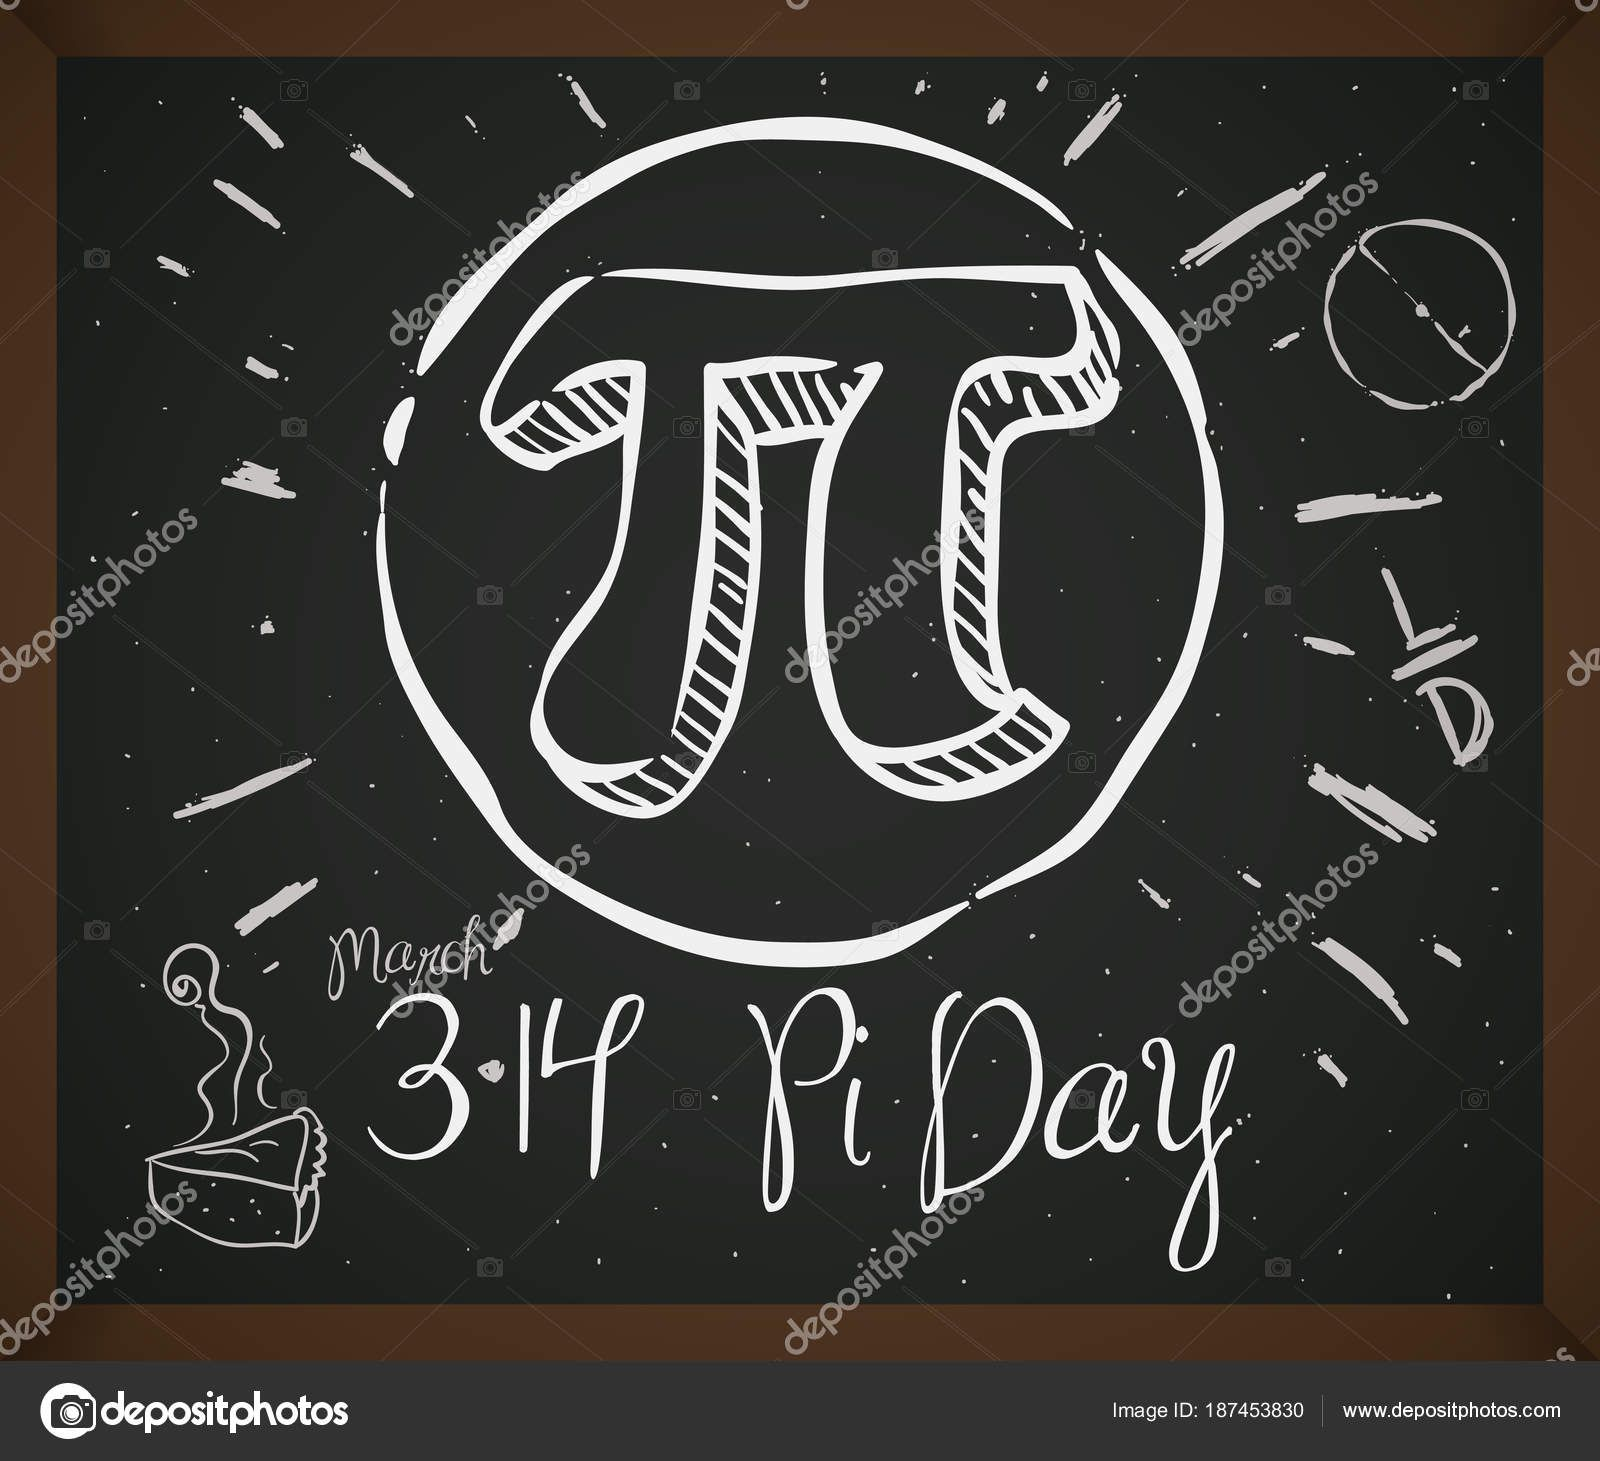 Doodle Drawing With Symbol Pie And Date For Pi Day Vector Illustration Doodle Drawings Doodles Drawings [ 1461 x 1600 Pixel ]